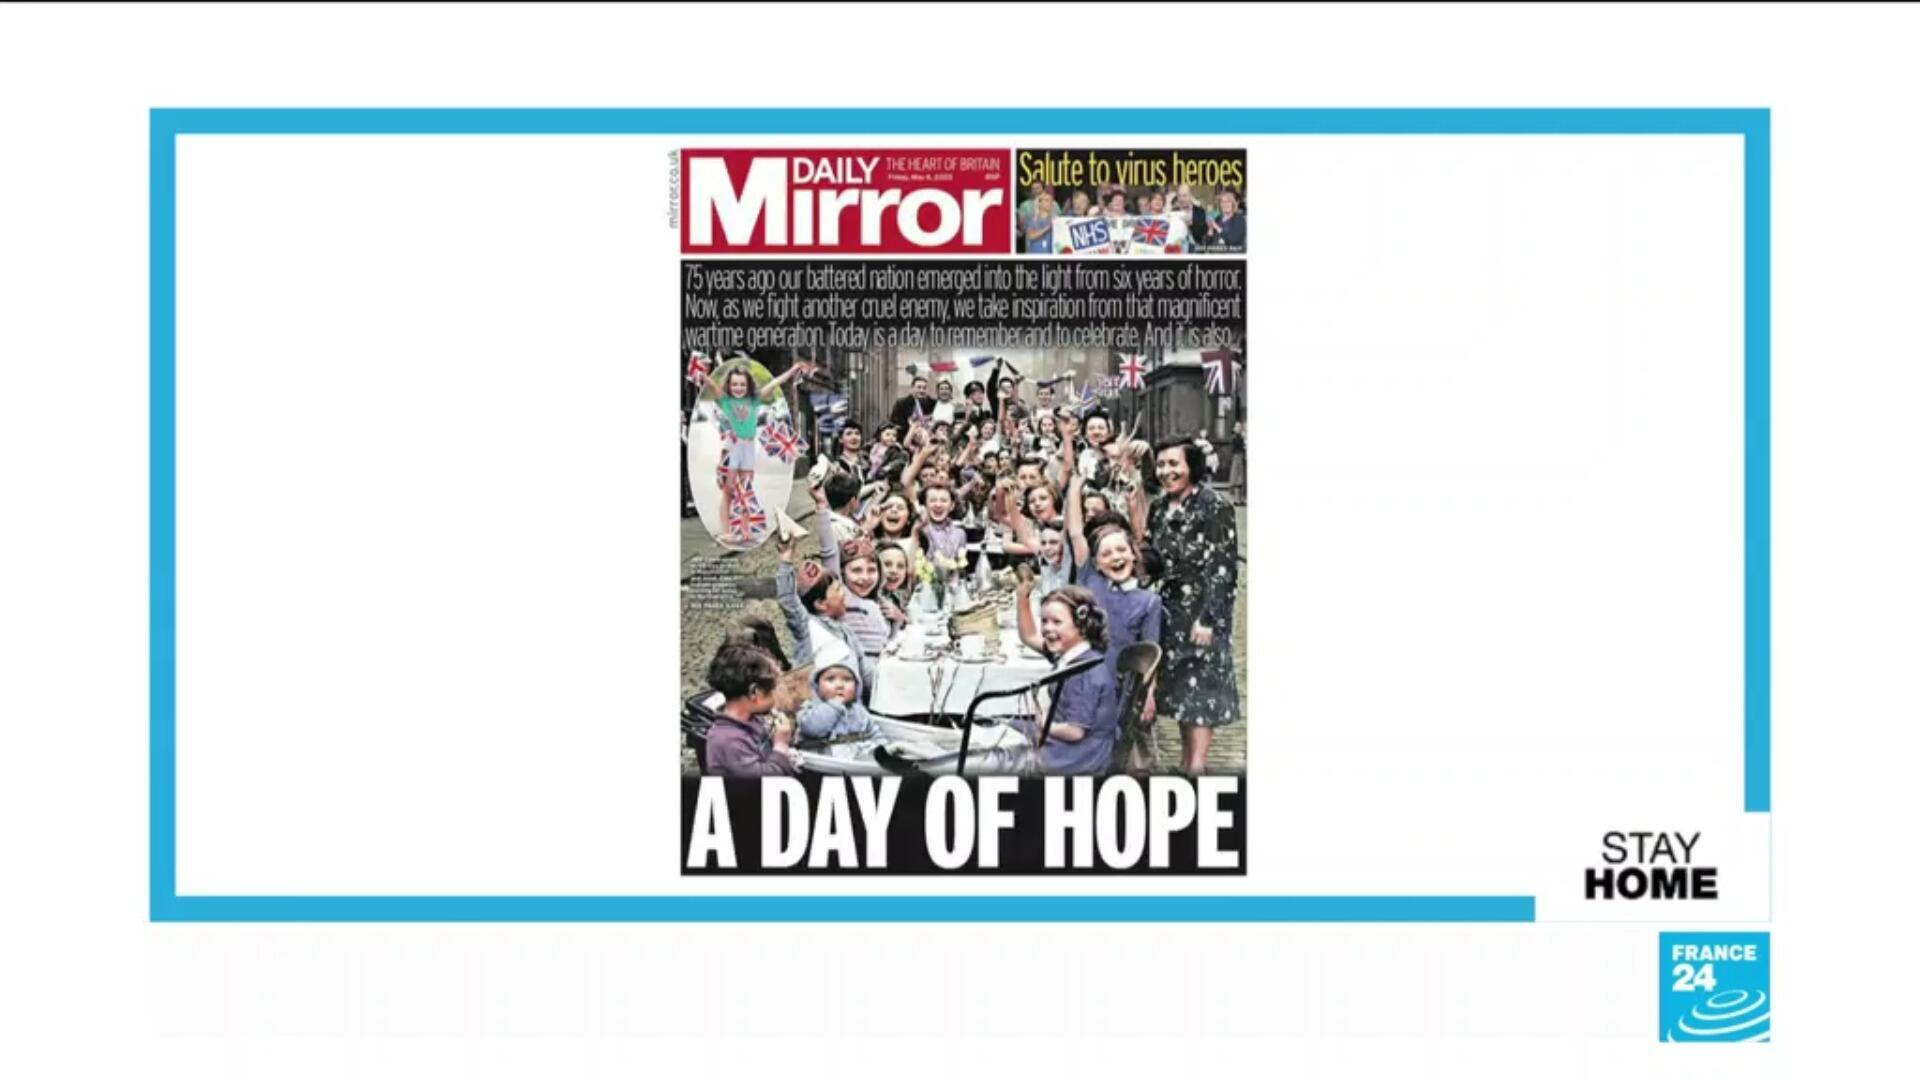 IN THE PAPERS 0508